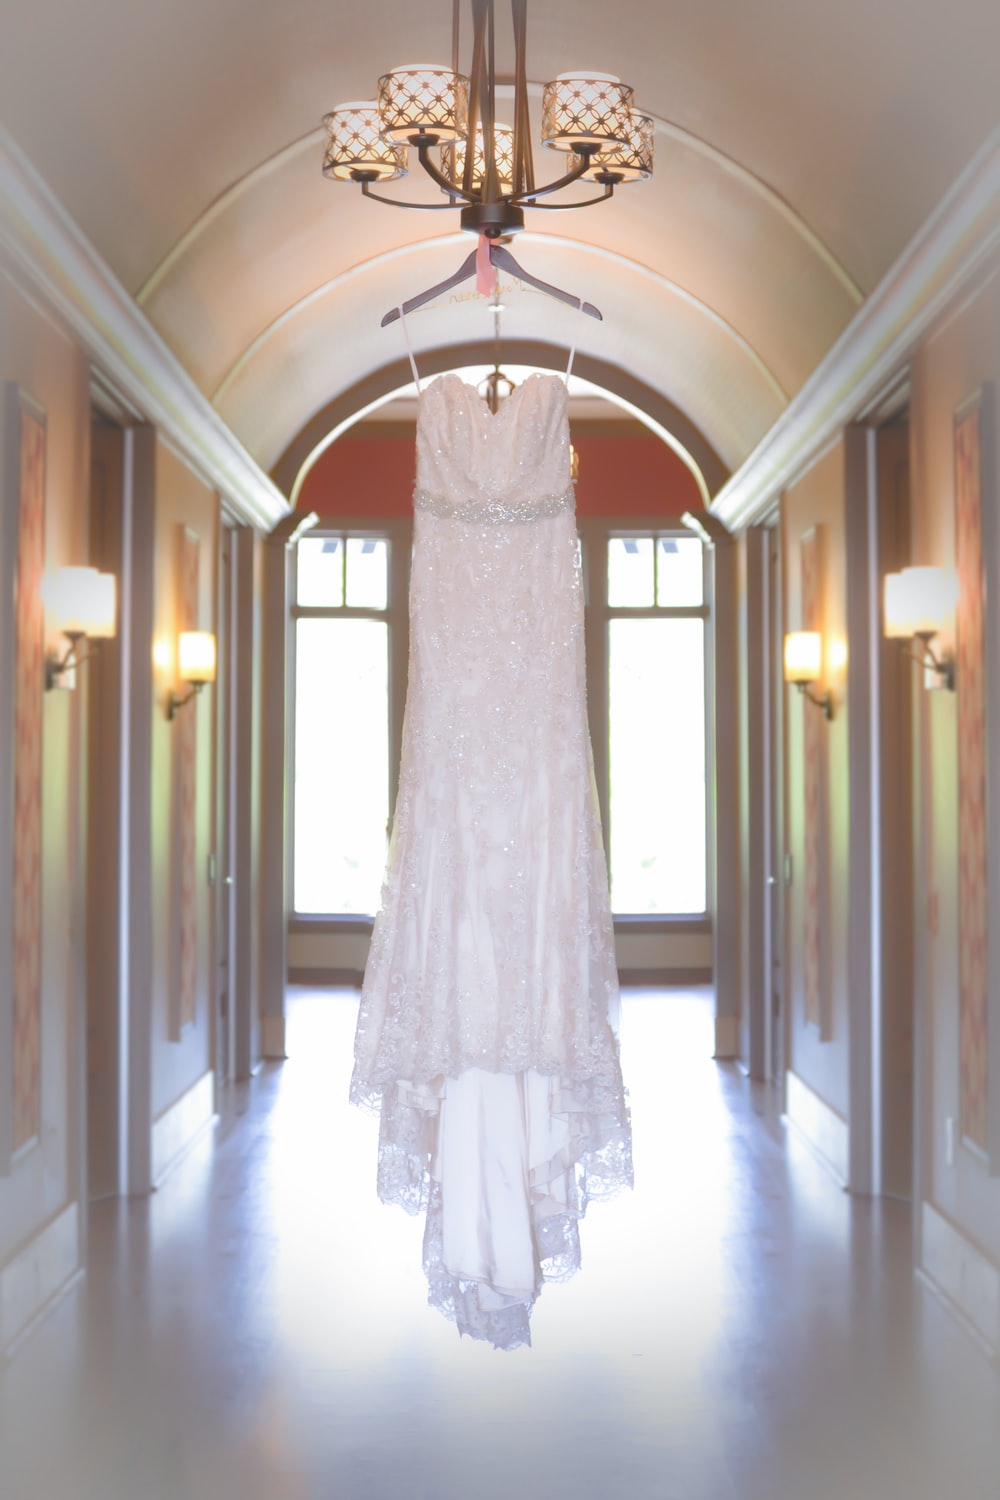 white spaghetti strap dress hang on chandelier